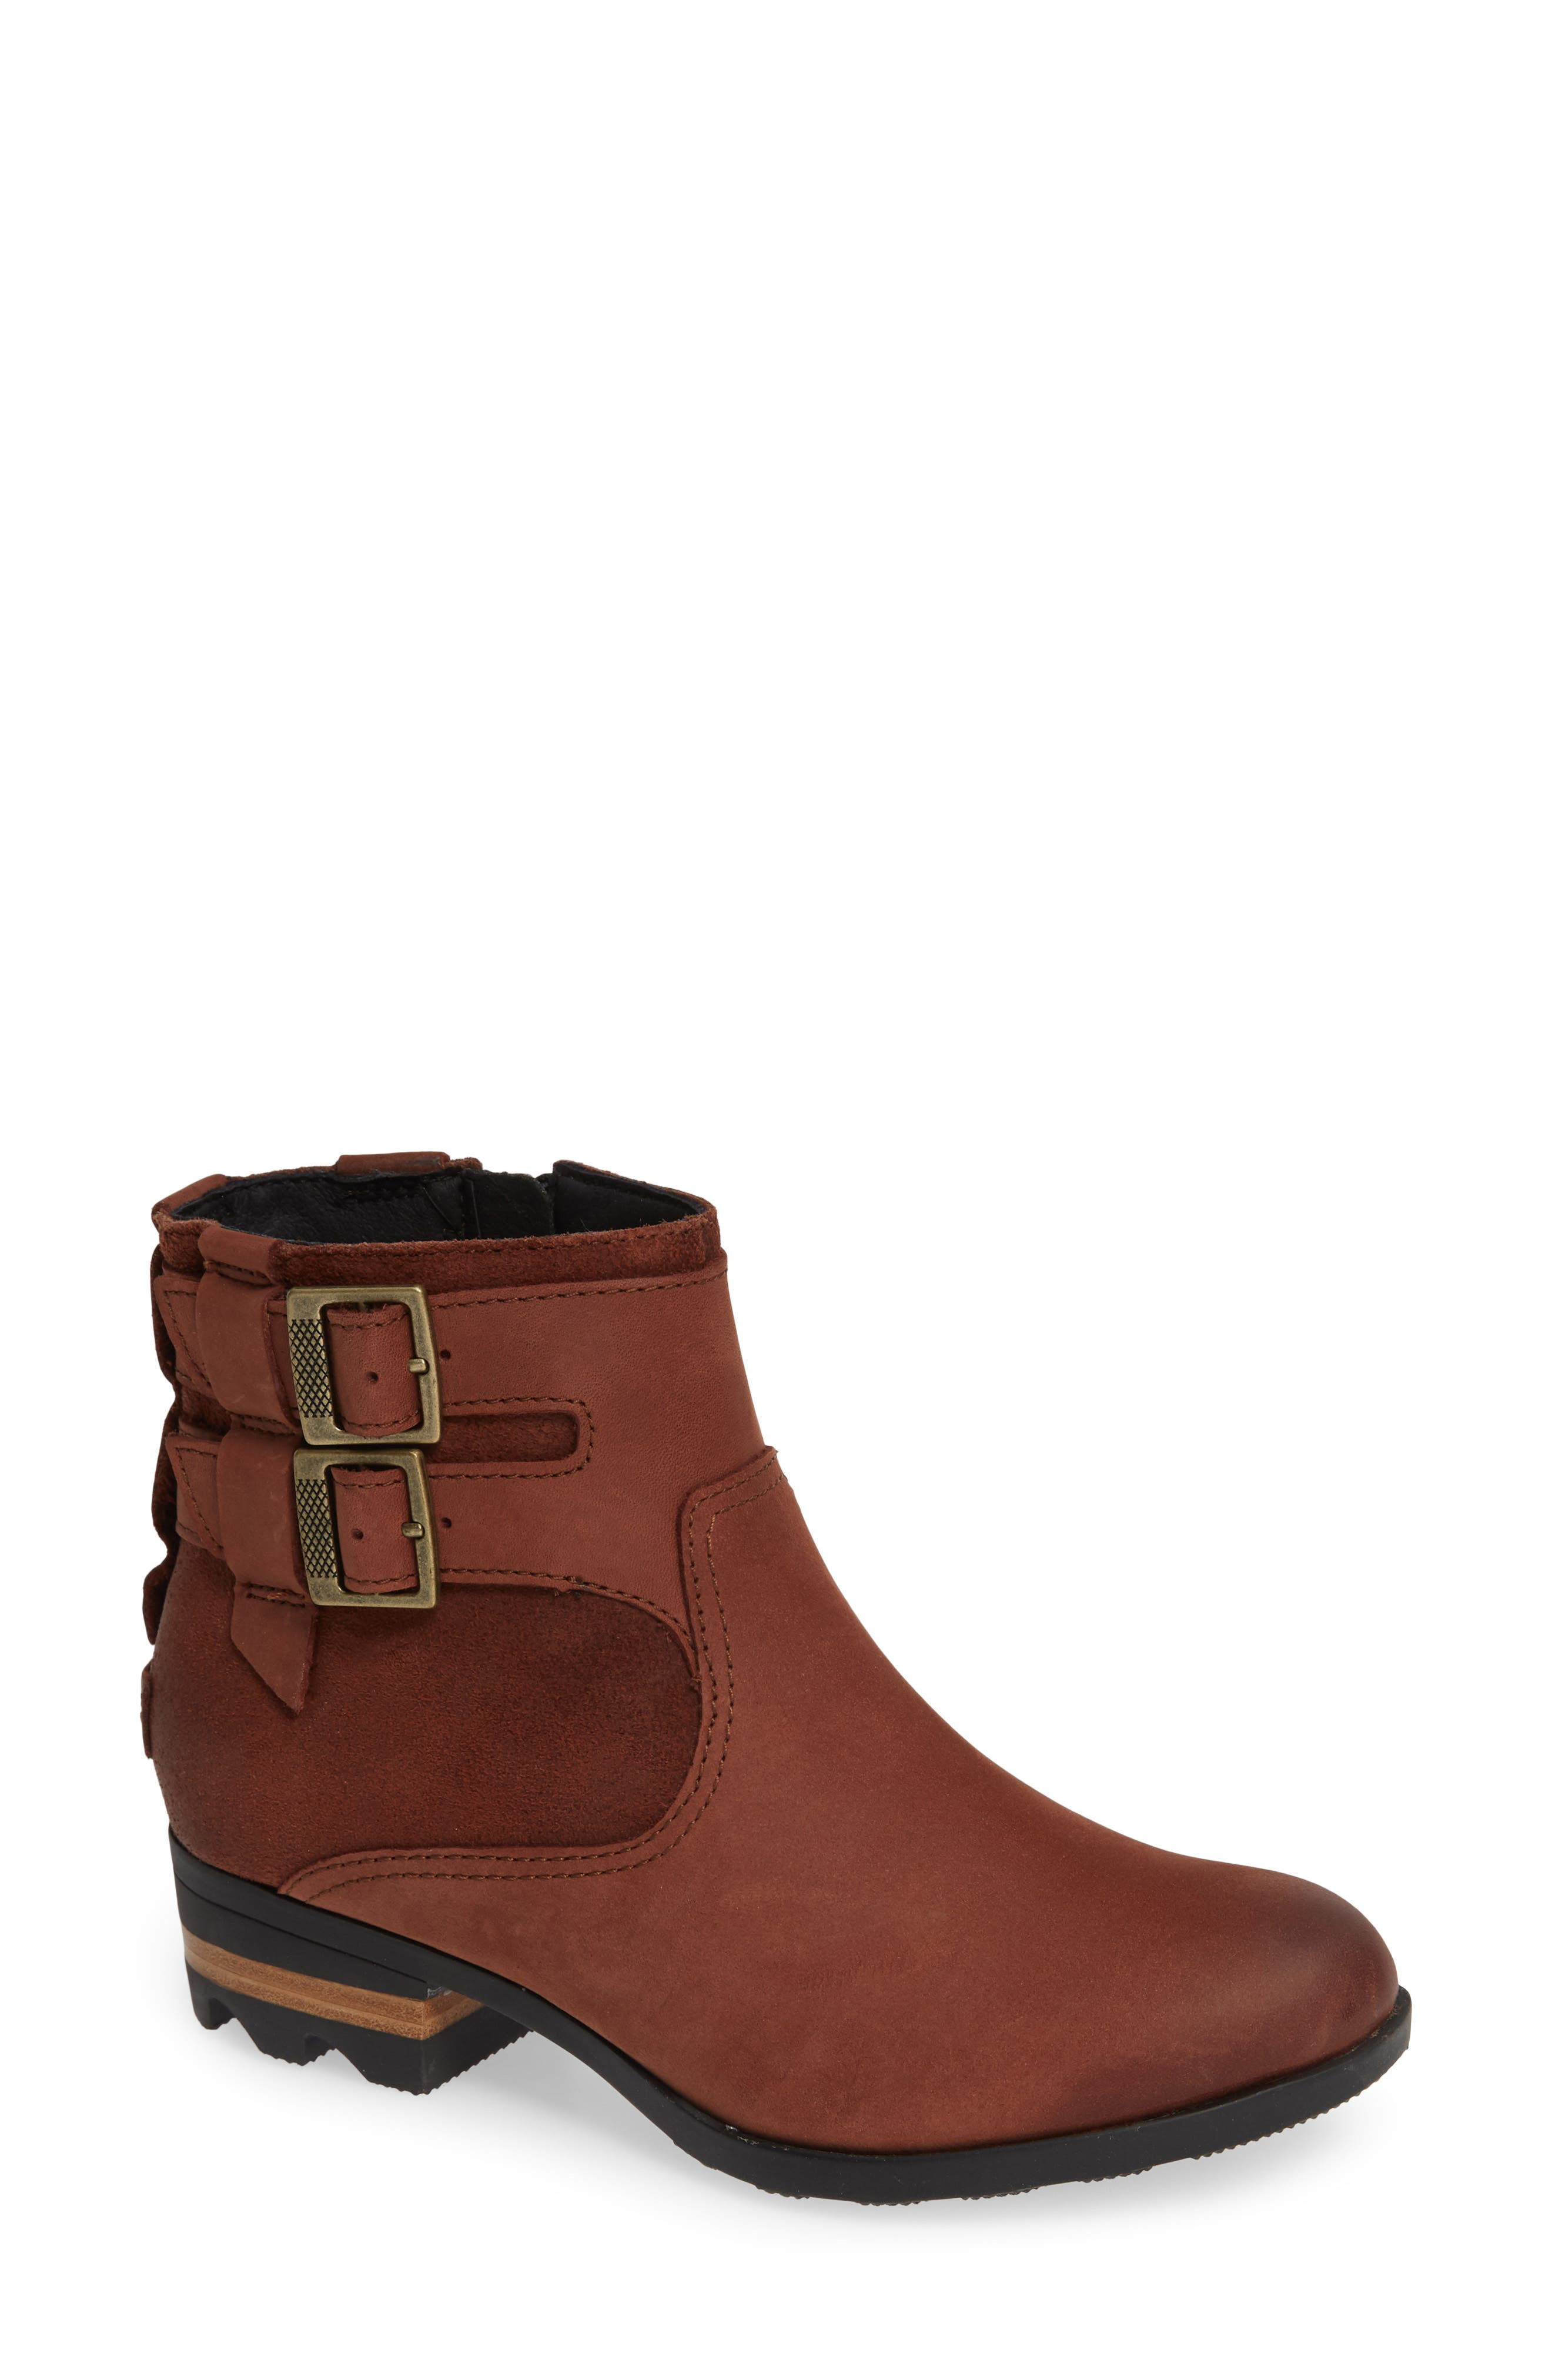 Sorel Lolla Waterproof Bootie, Brown